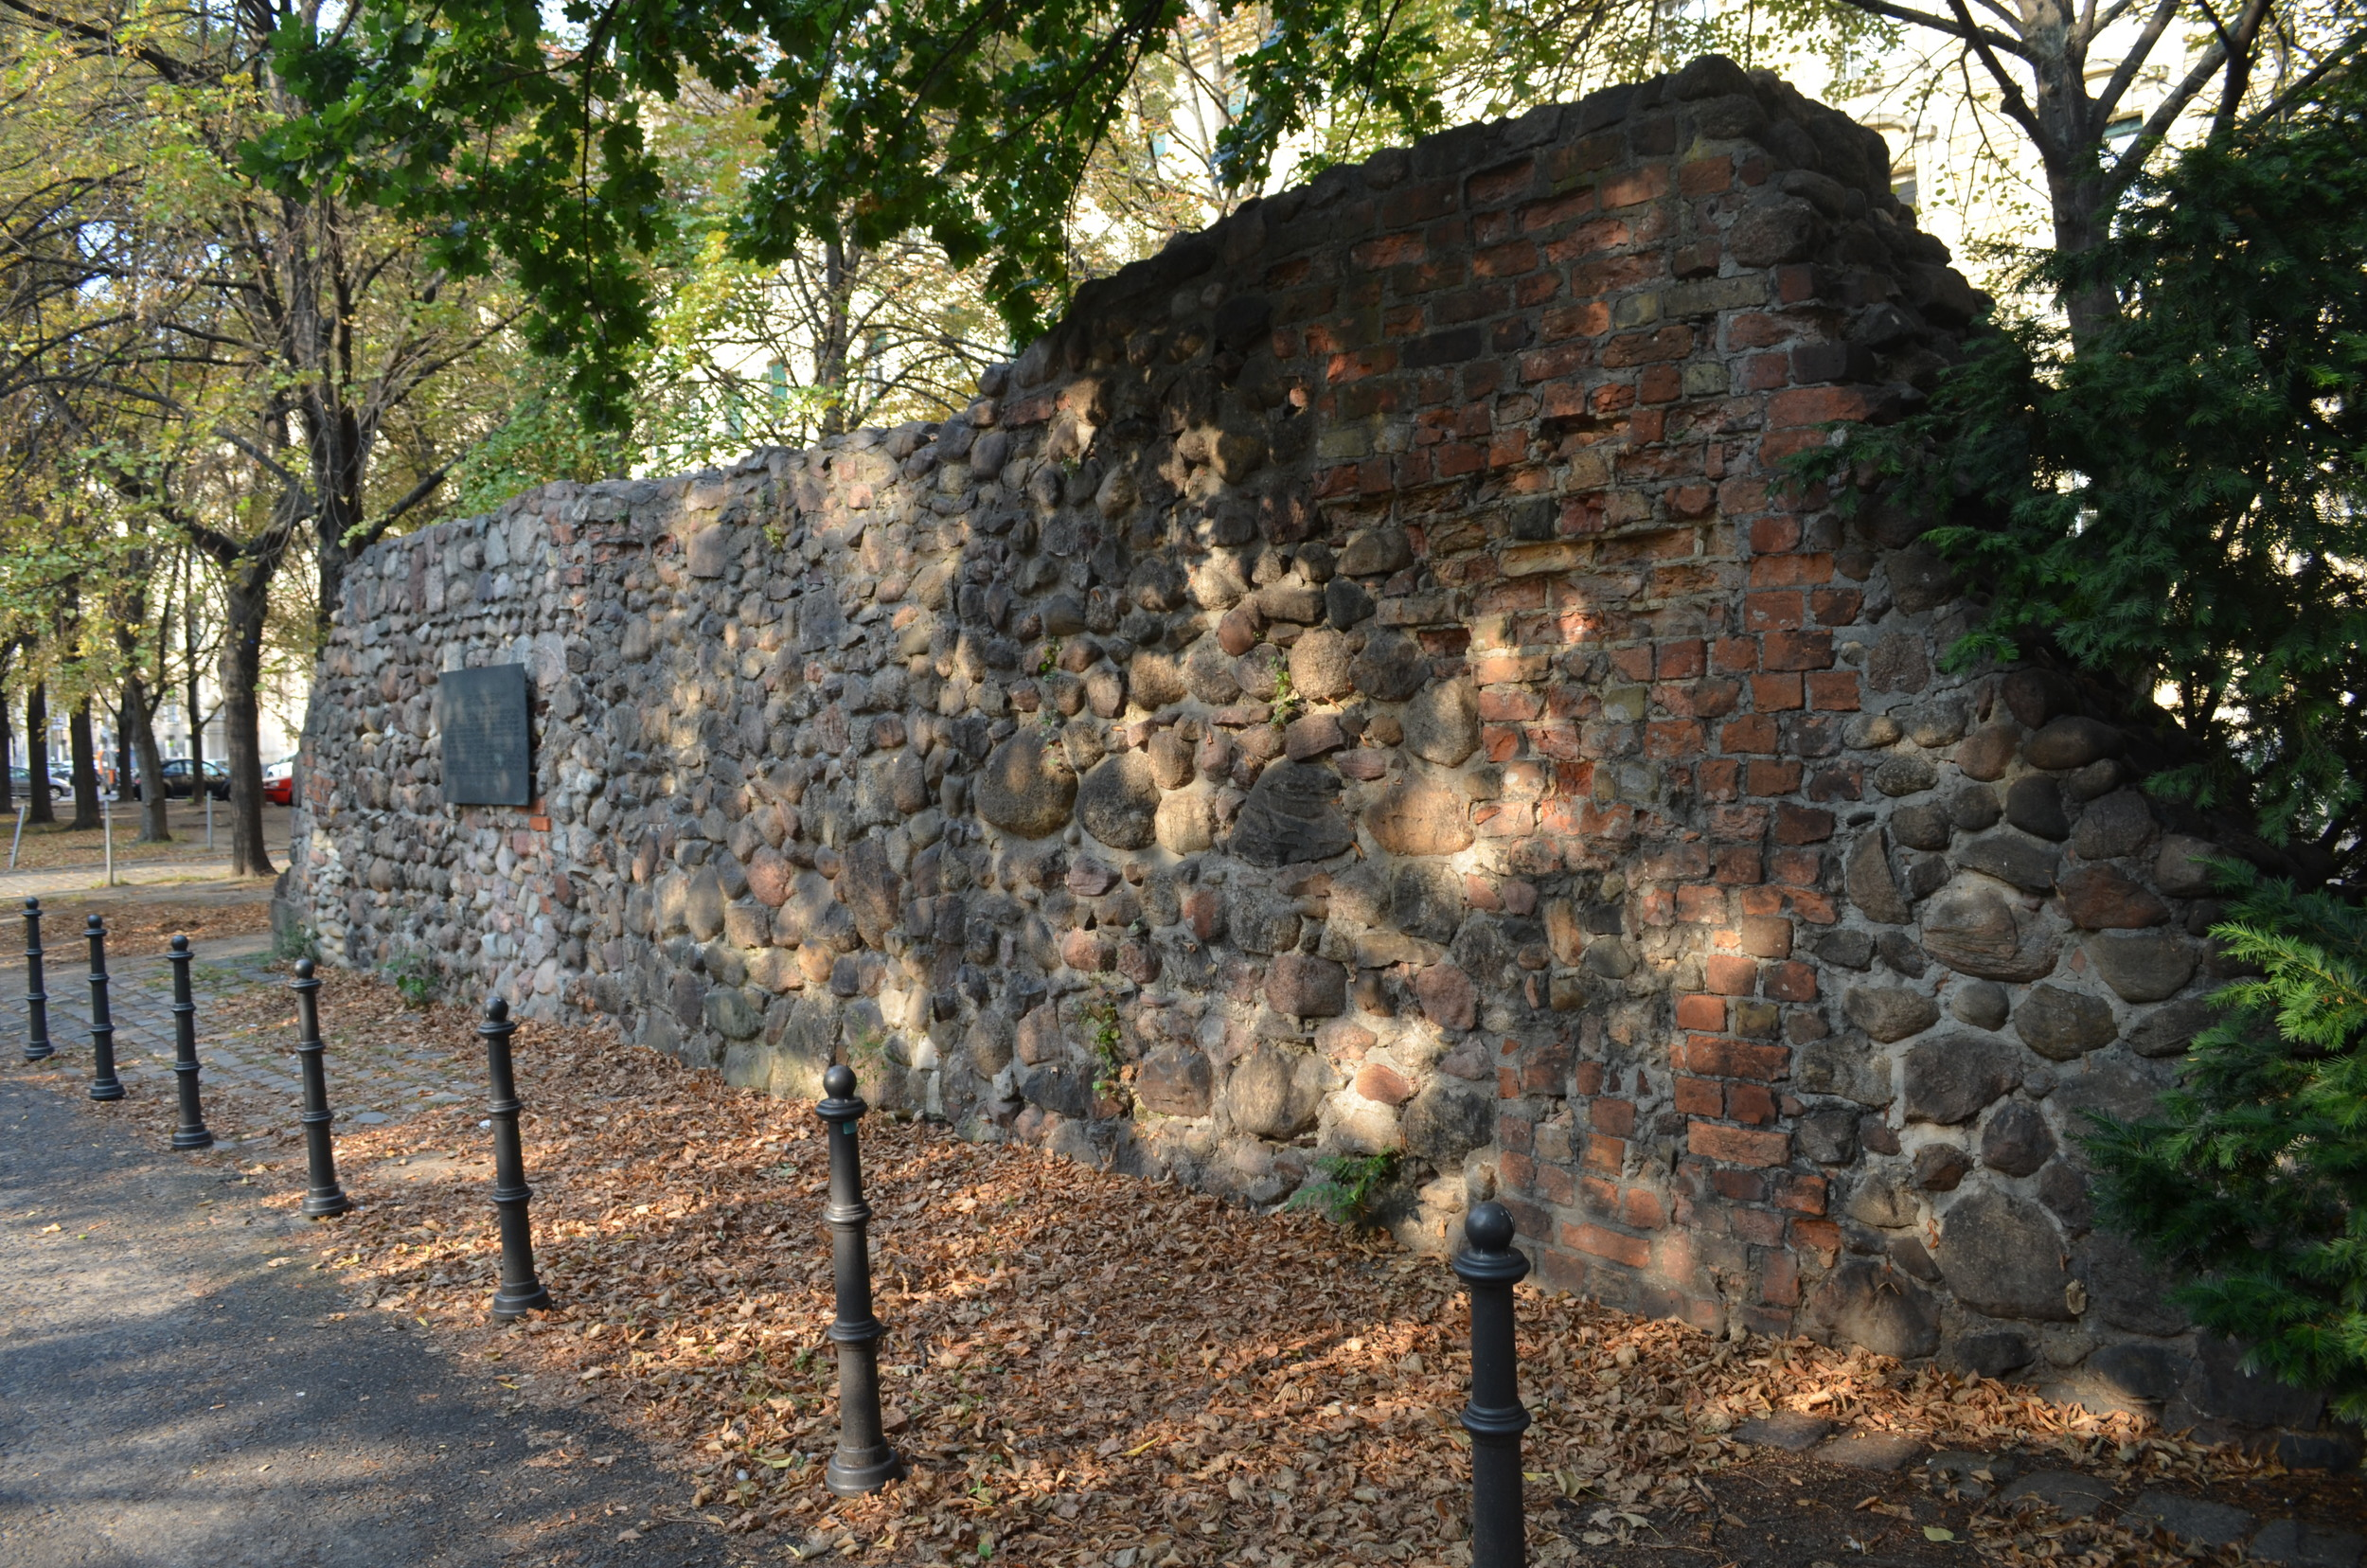 One of the remnants of the wall on Littenstraße. The wall was originally built with whatever materials were at hand: bricks, stones, or rubble.